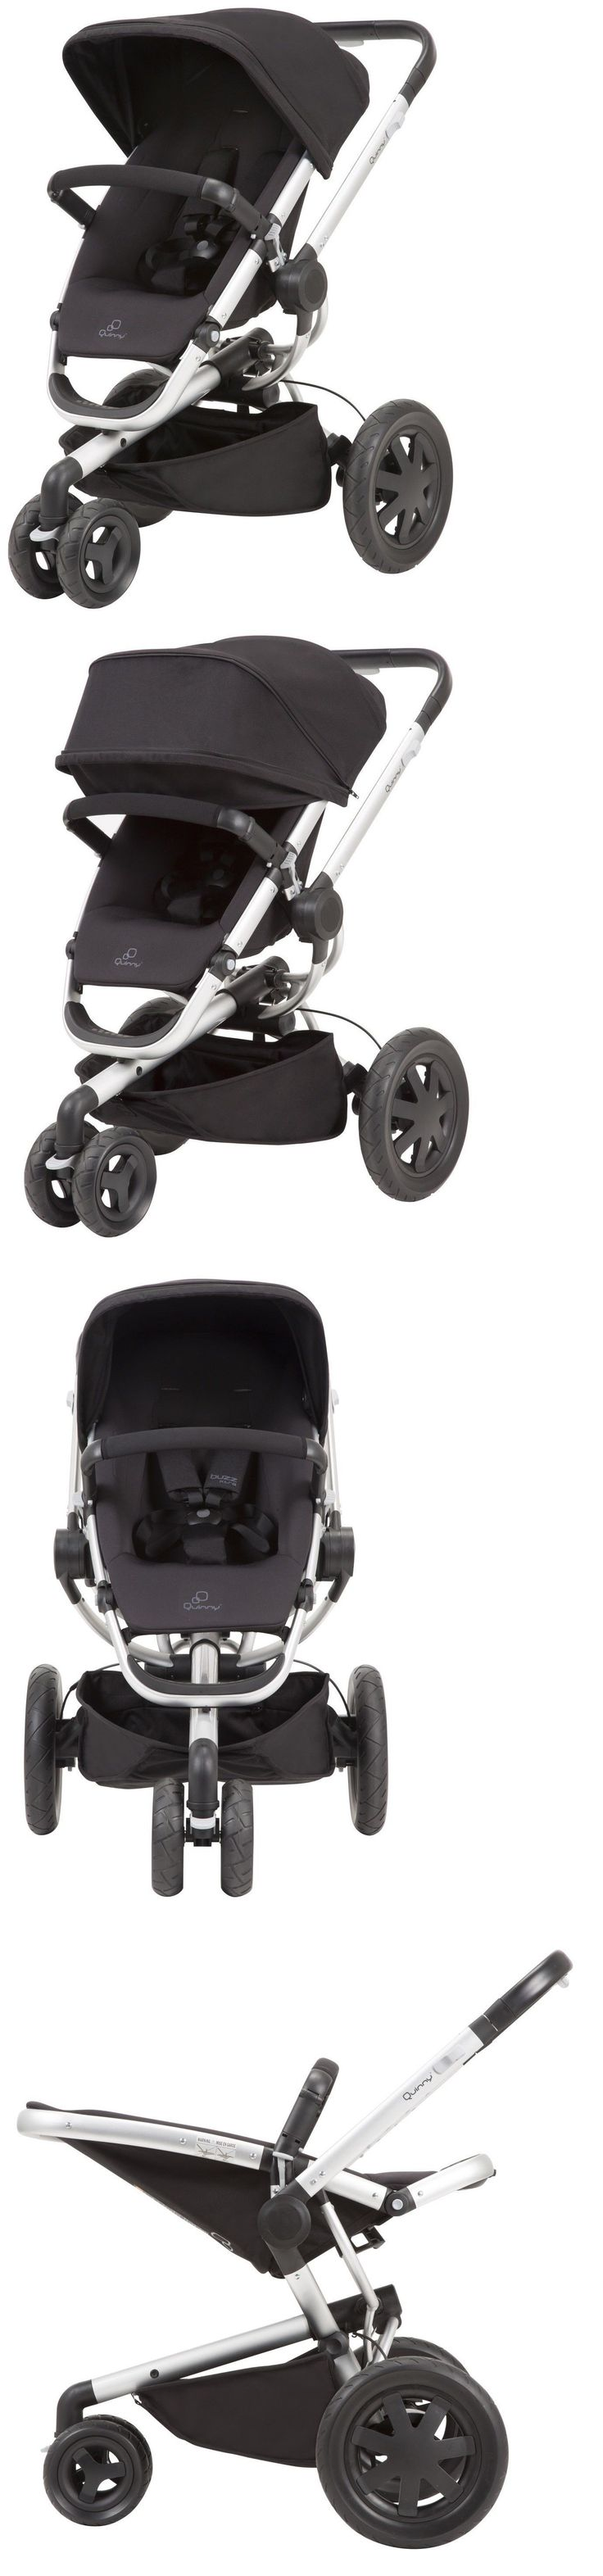 Strollers 66700: Quinny Buzz Xtra 2.0 Auto Unfold Reversible Seat Baby Stroller Rocking Black New -> BUY IT NOW ONLY: $359.99 on eBay!